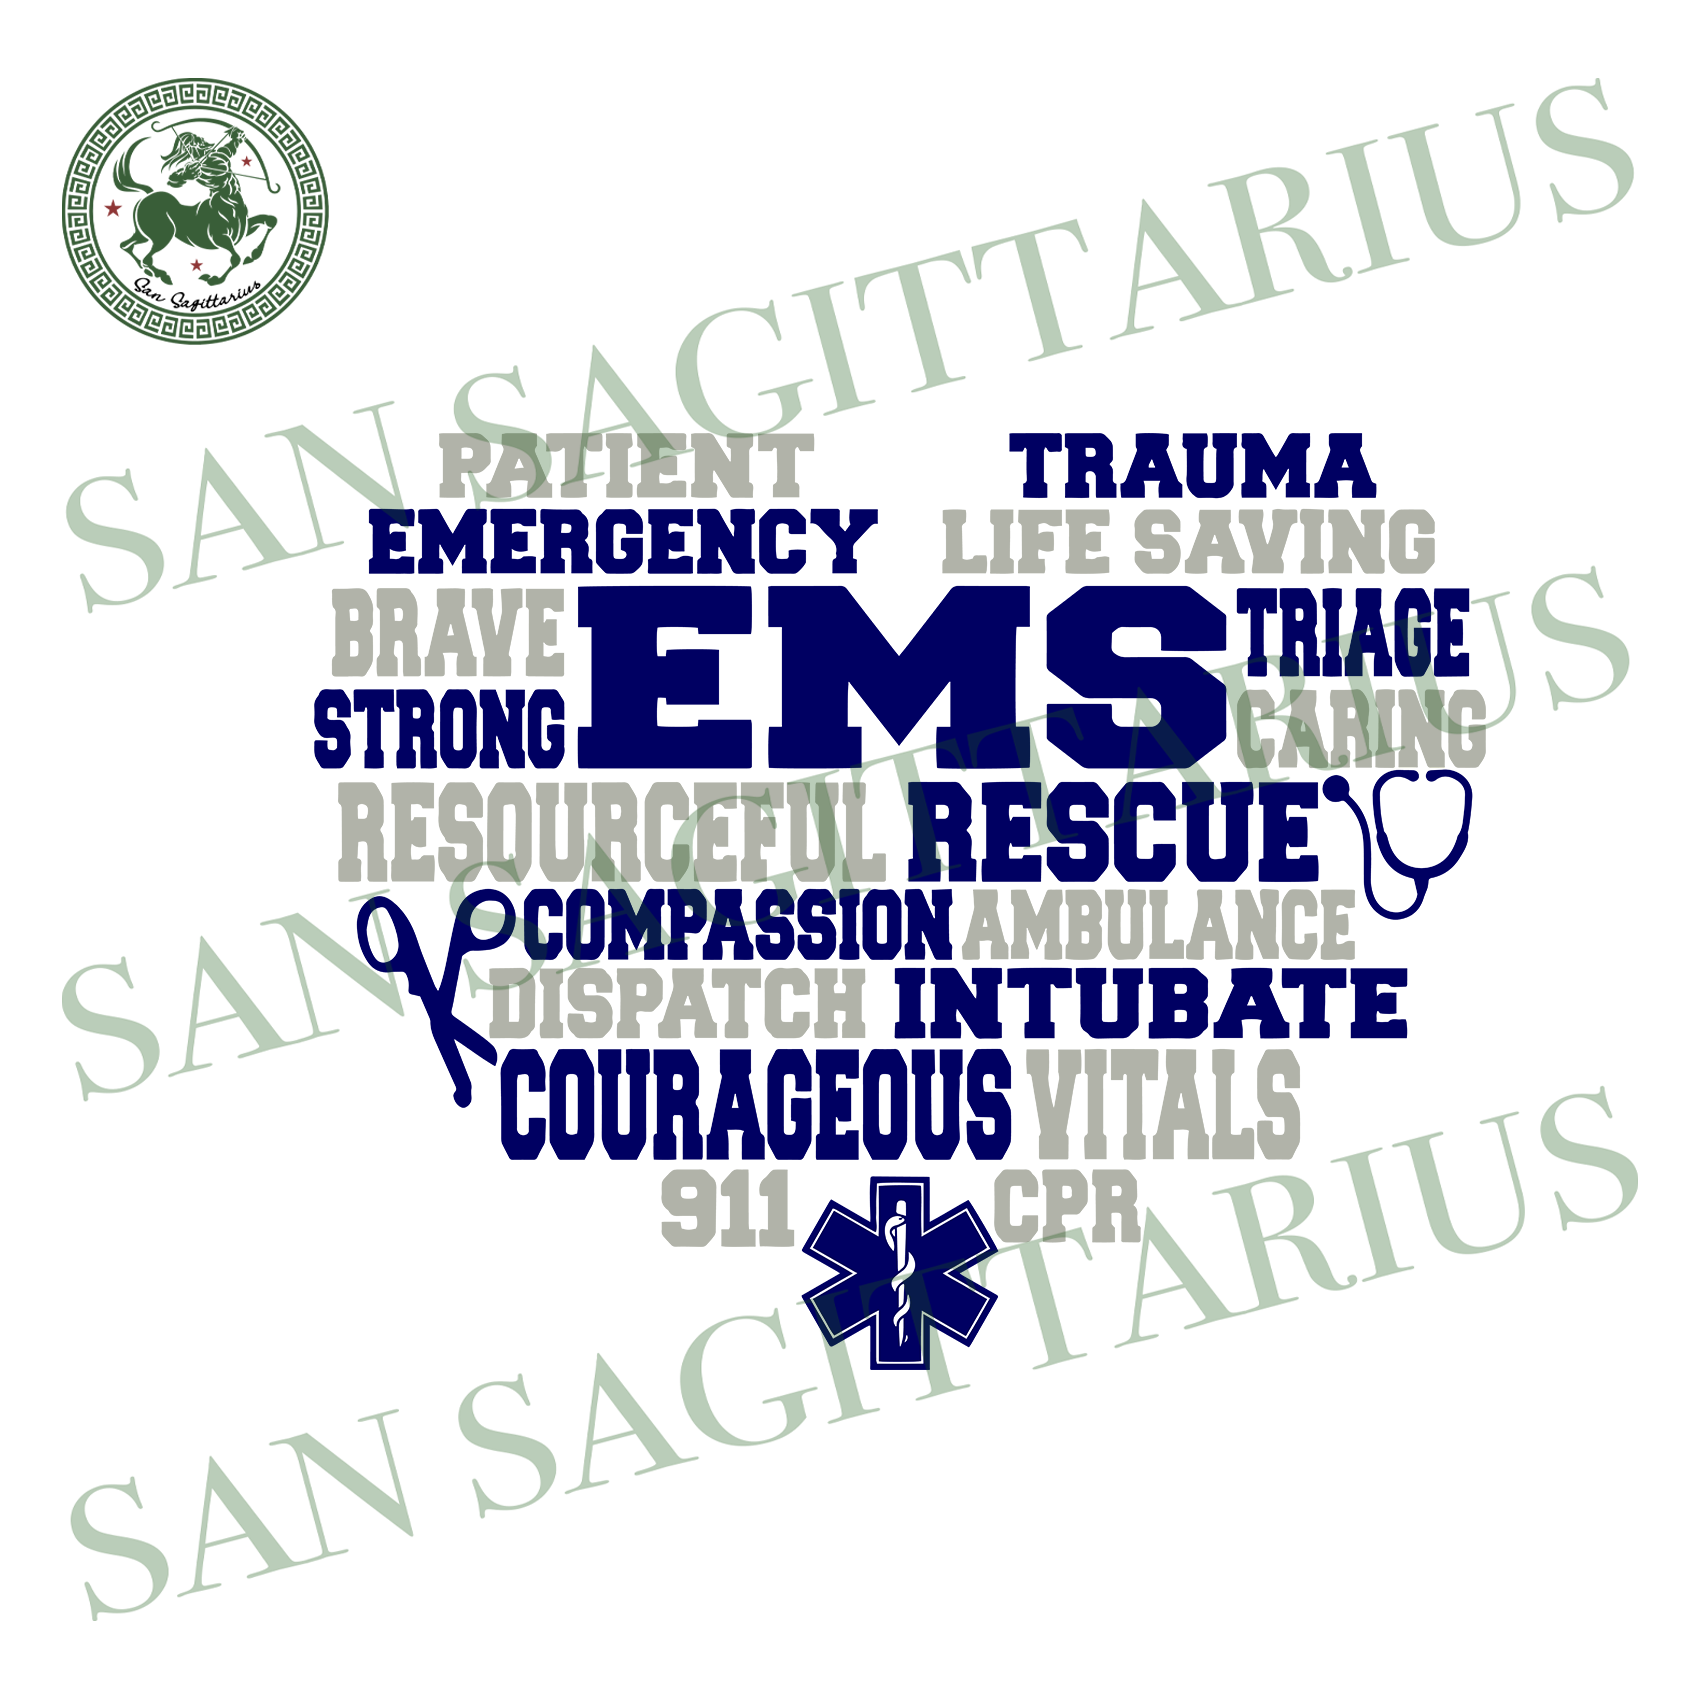 EMS rescue svg,svg,emergency svg,trauma svg,courageous svg,strong svg,triage svg,svg cricut, silhouette svg files, cricut svg, silhouette svg, svg designs, vinyl svg